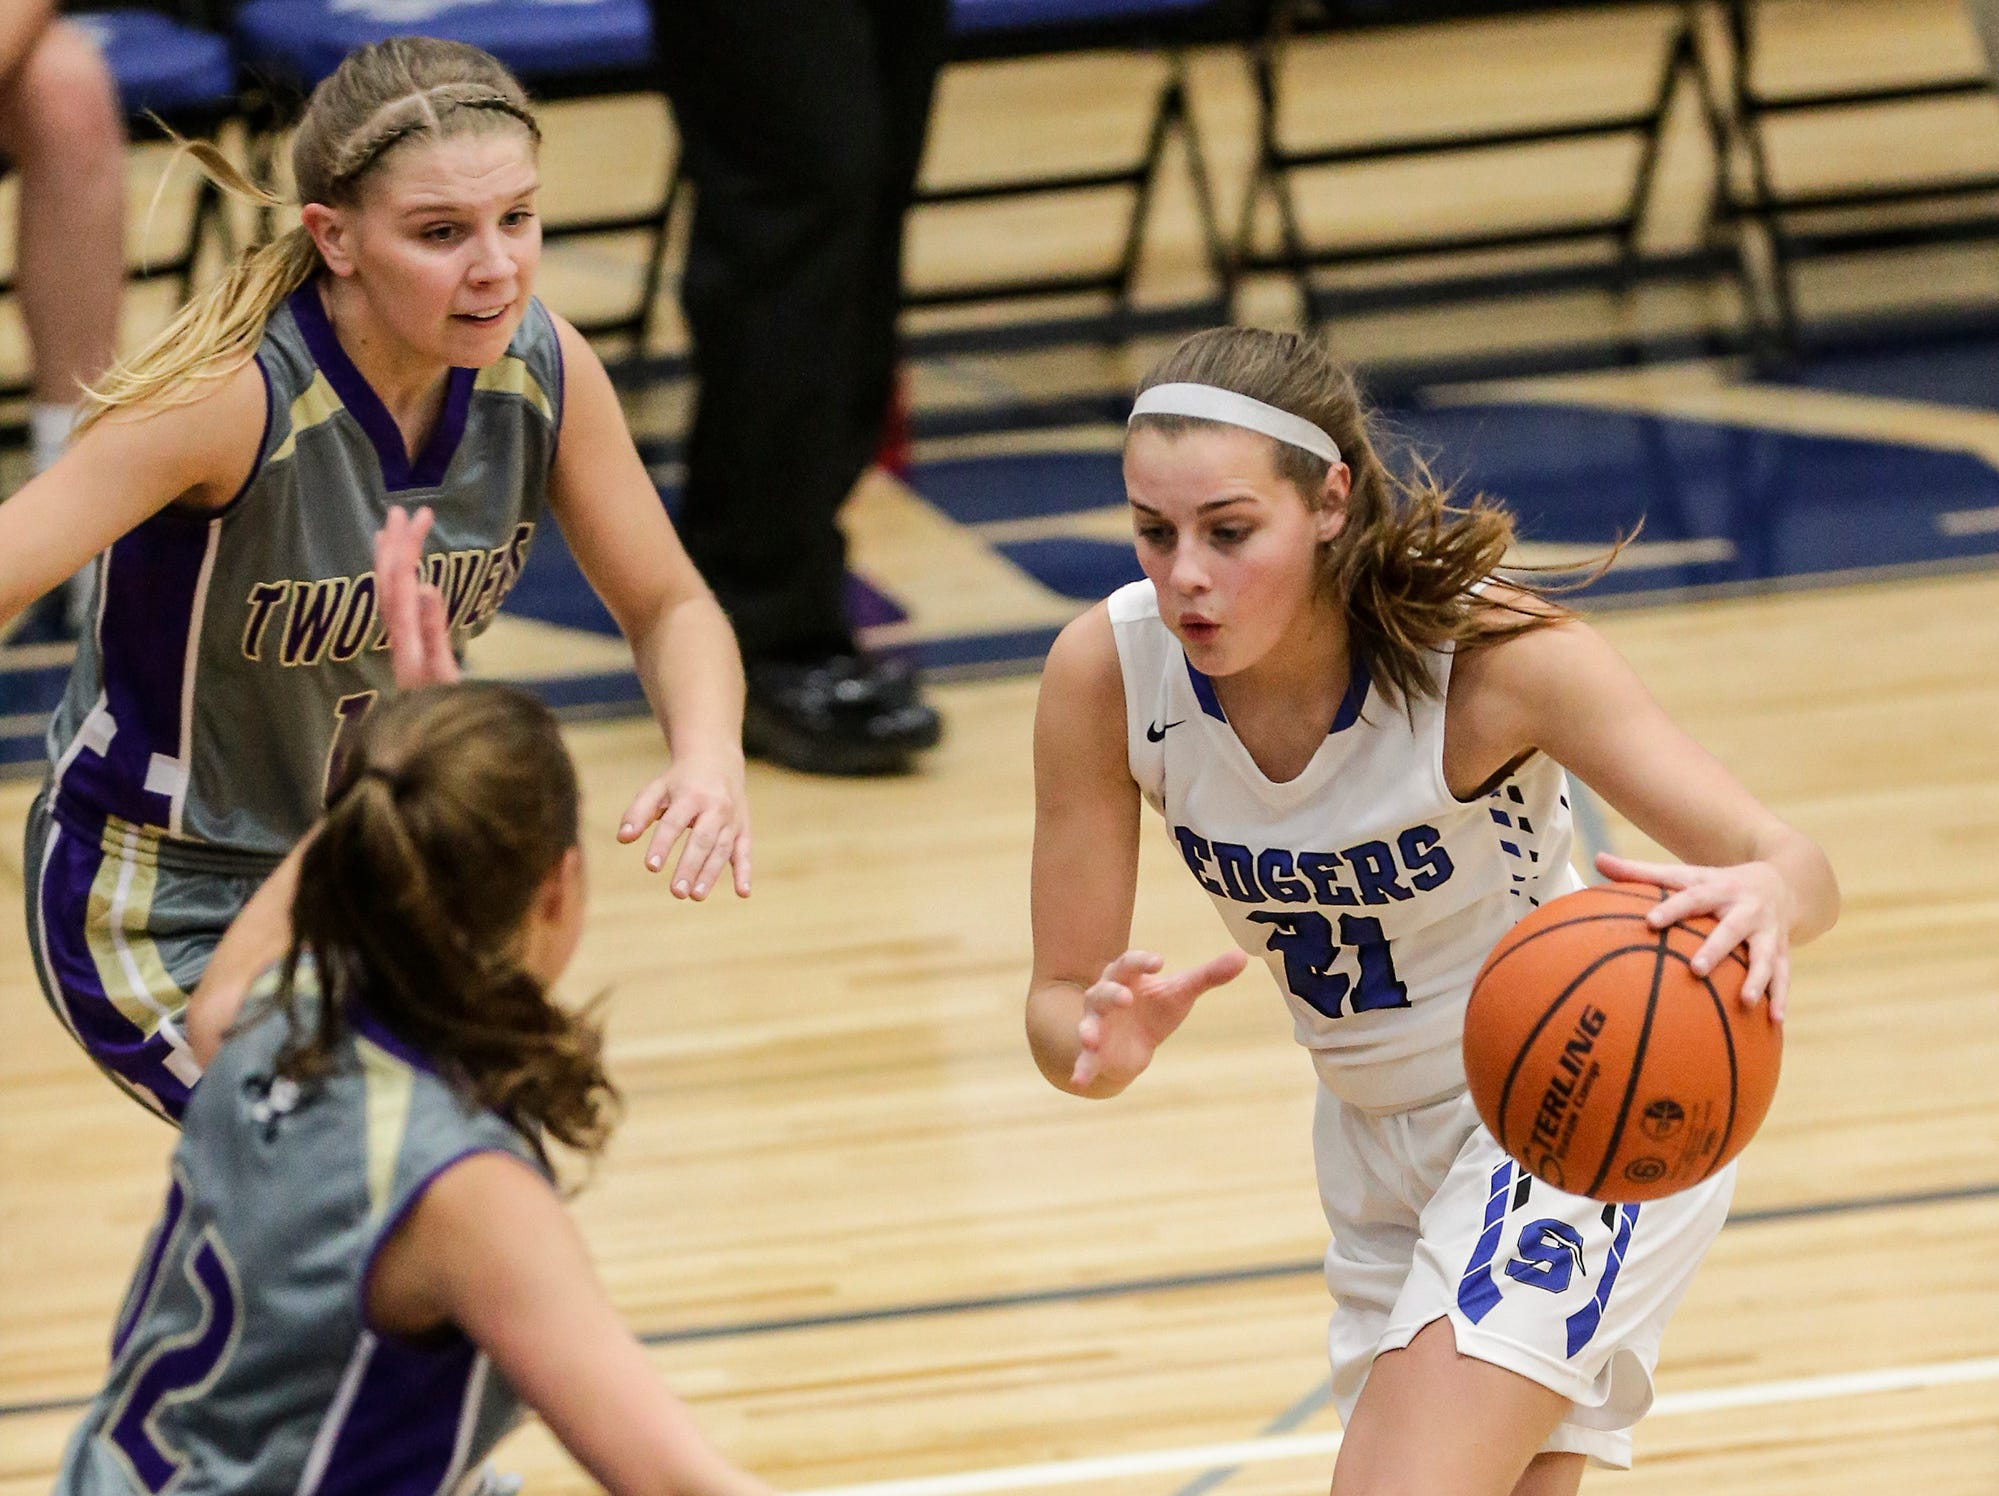 St. Mary's Springs girls basketball's Jennifer Chatterton drives towards the basket against Two Rivers High School during their game Friday, November 16, 2018 in Fond du Lac. Doug Raflik/USA TODAY NETWORK-Wisconsin